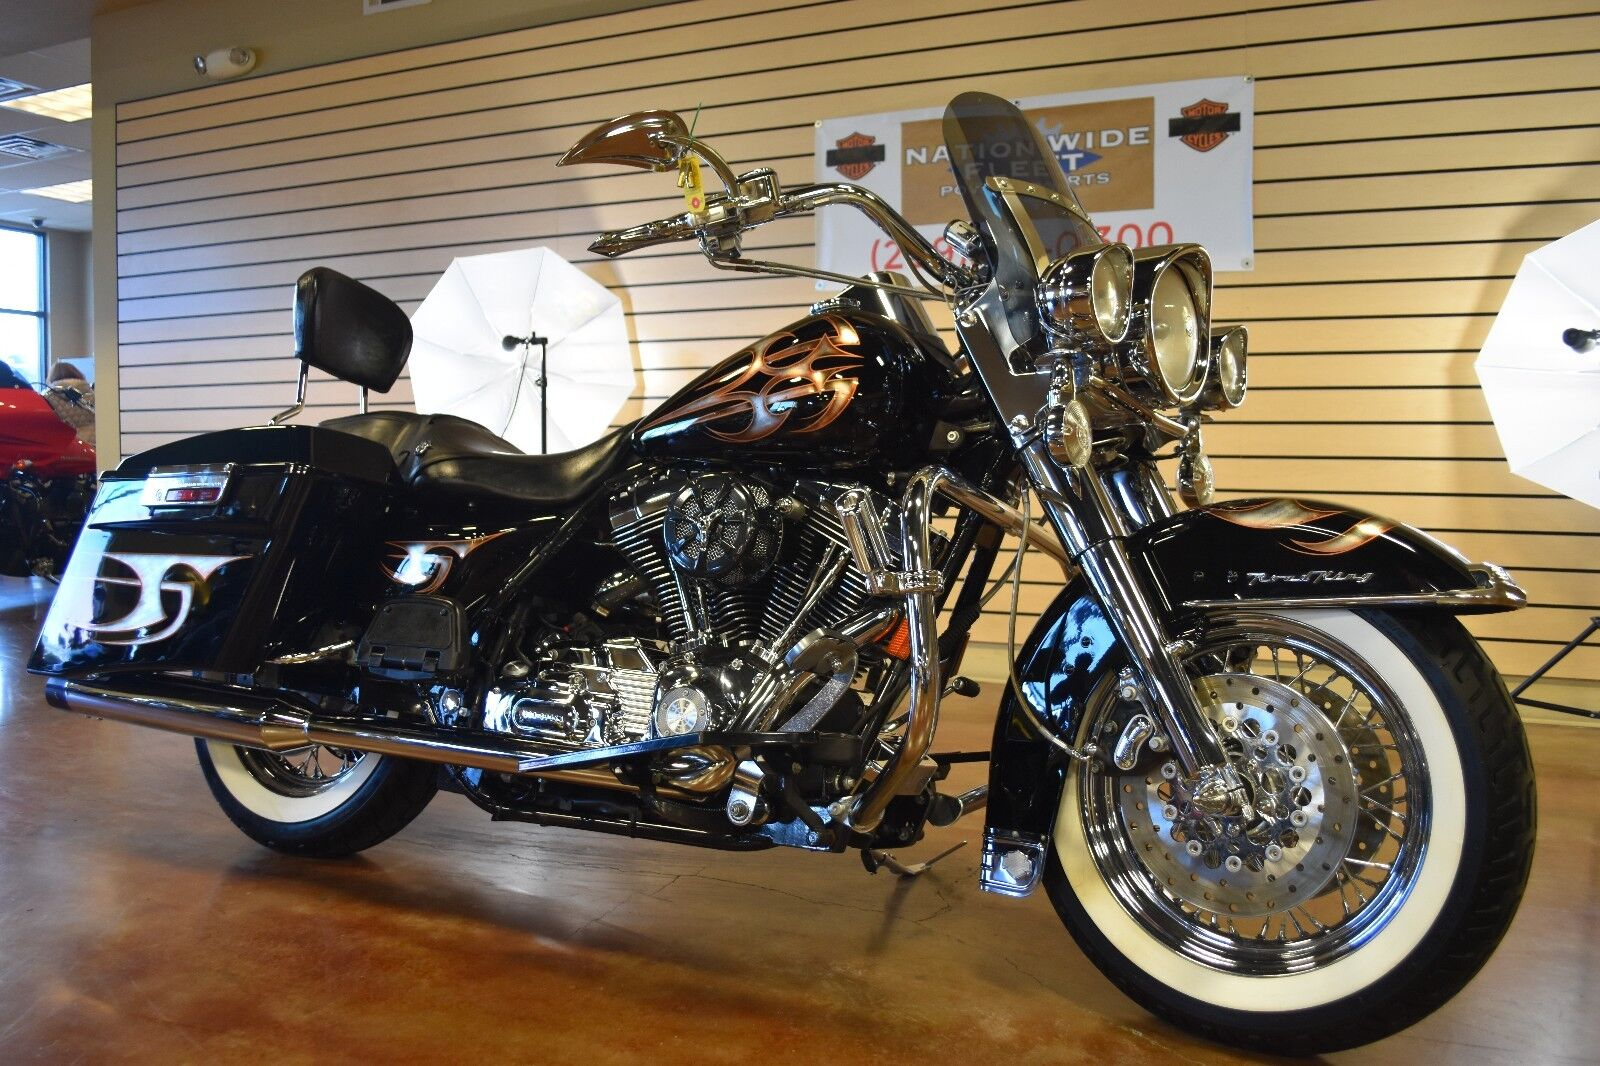 2007 Harley Davidson Road King Custom FLHRS NO RESERVE Great looking Custom Bike